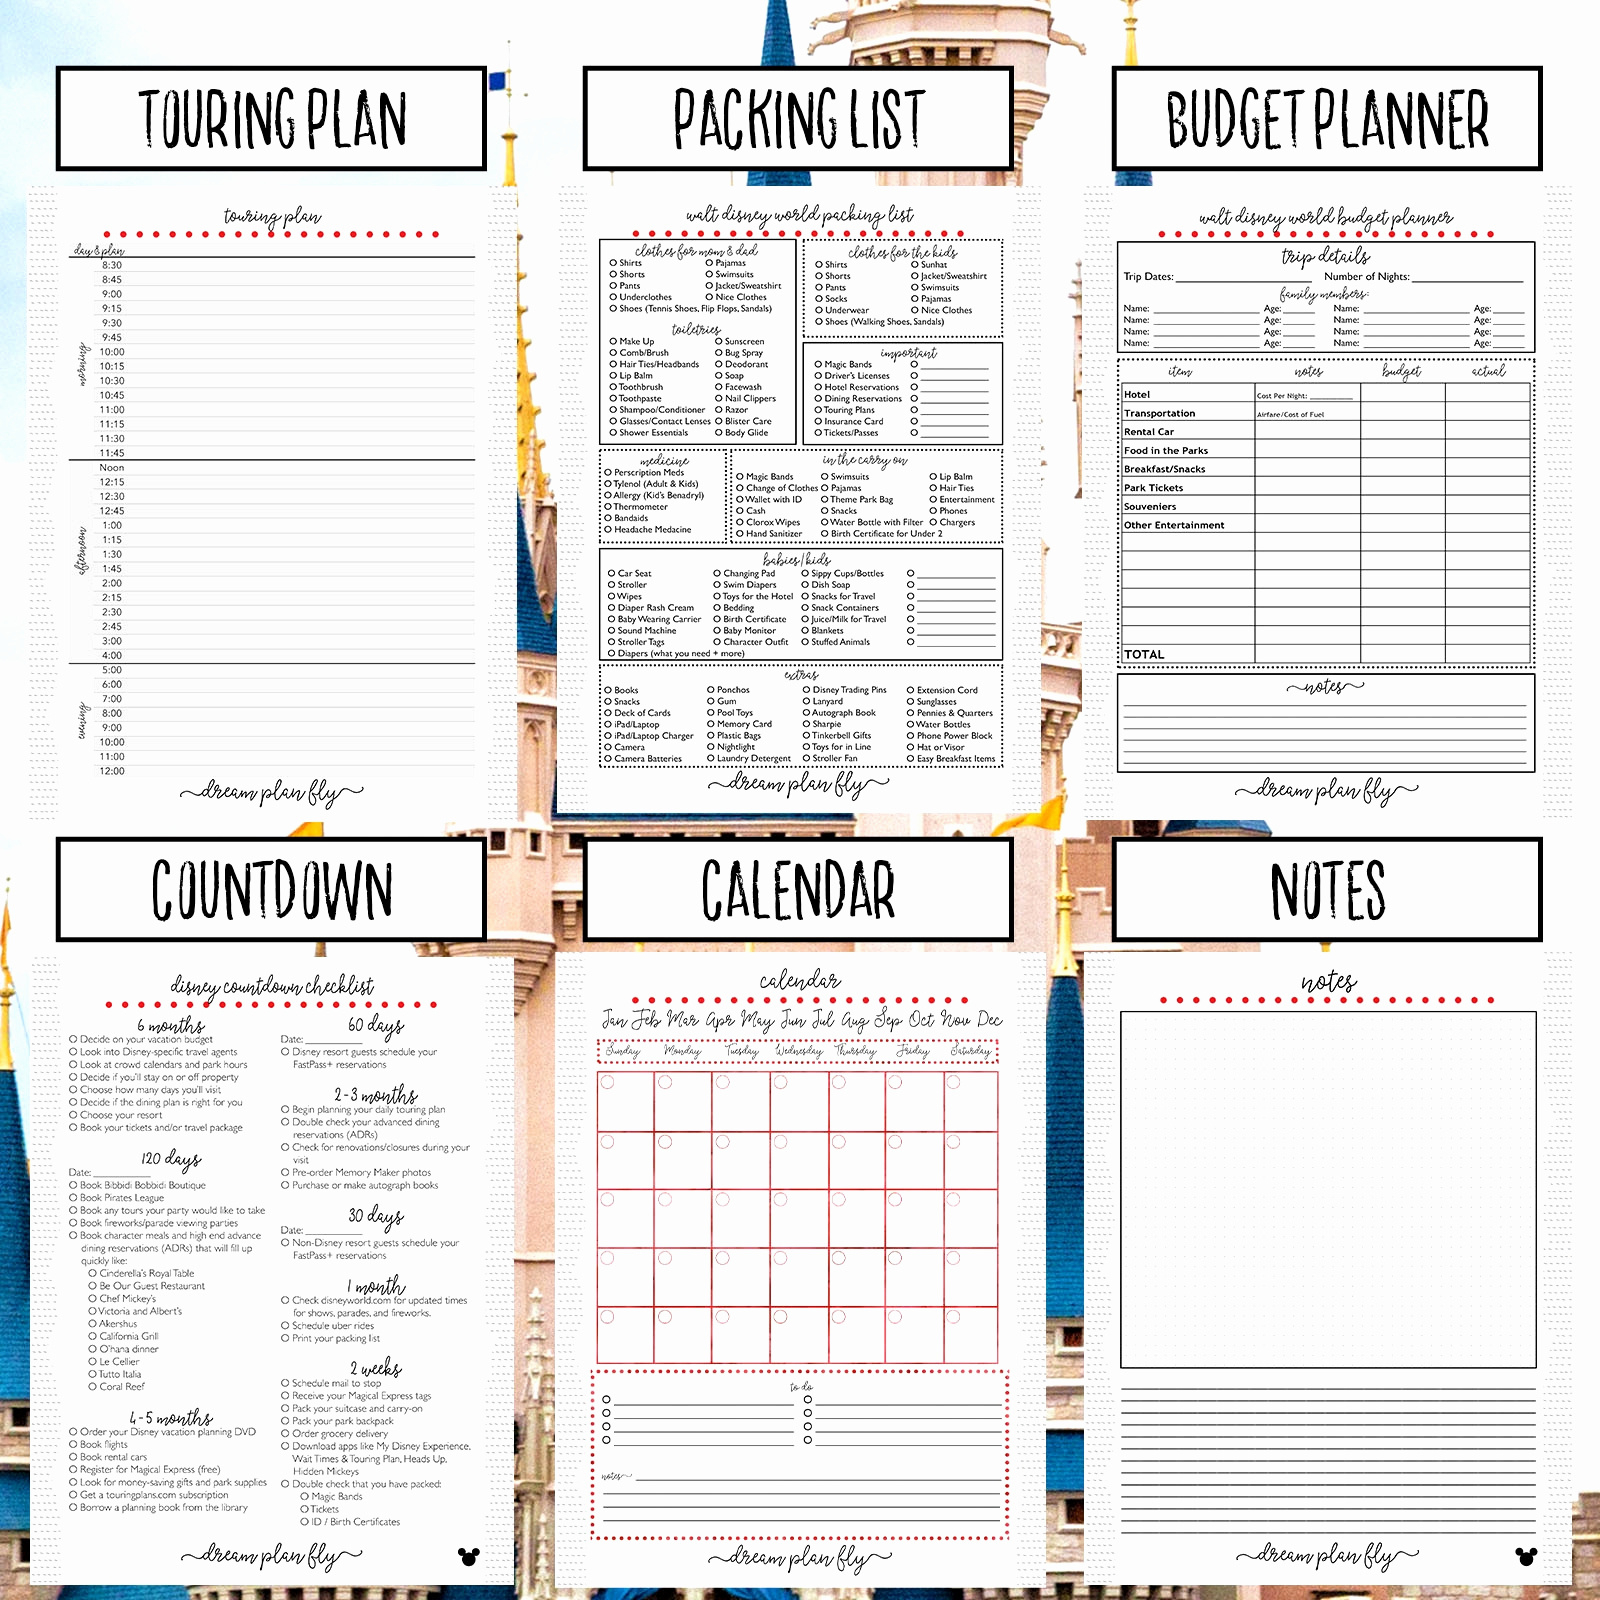 Reserve Study Spreadsheet Intended For Free Reserve Study Spreadsheet – Spreadsheet Collections Reserve Study Spreadsheet Printable Spreadsheet  Printable Spreadsheet  reserve study spreadsheet